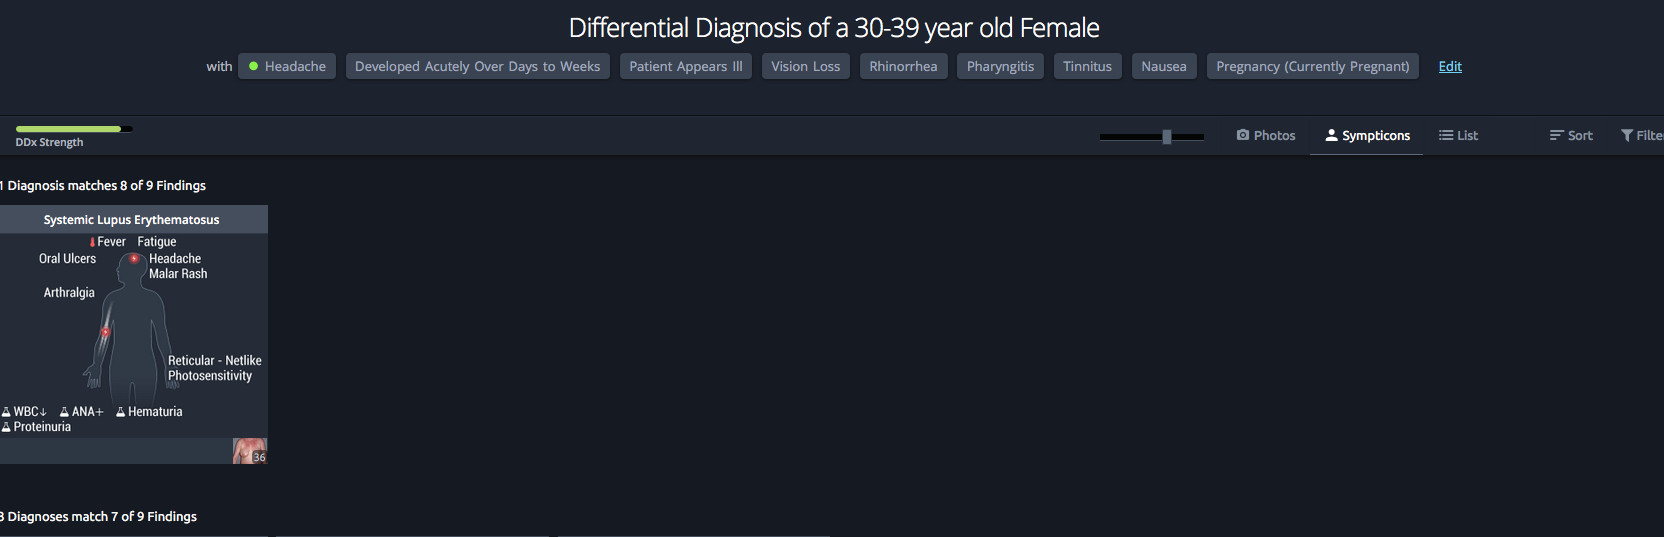 VisualDX Differential Diagnosis